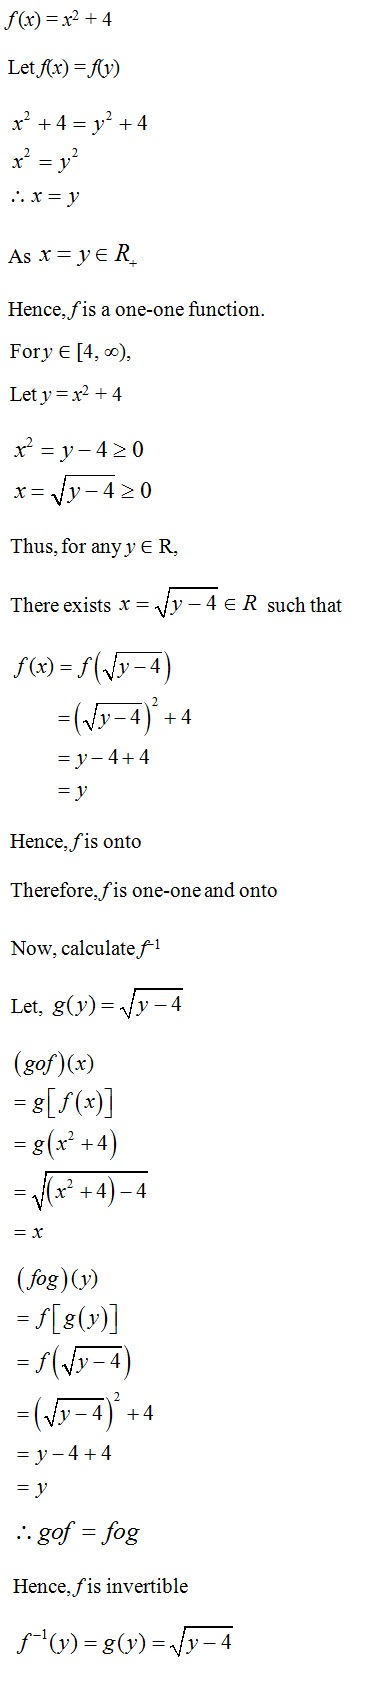 NCERT Solutions for CBSE Class 12th Maths, Chapter 1: Relations and Functions, Exercise 1.3, Solution 8